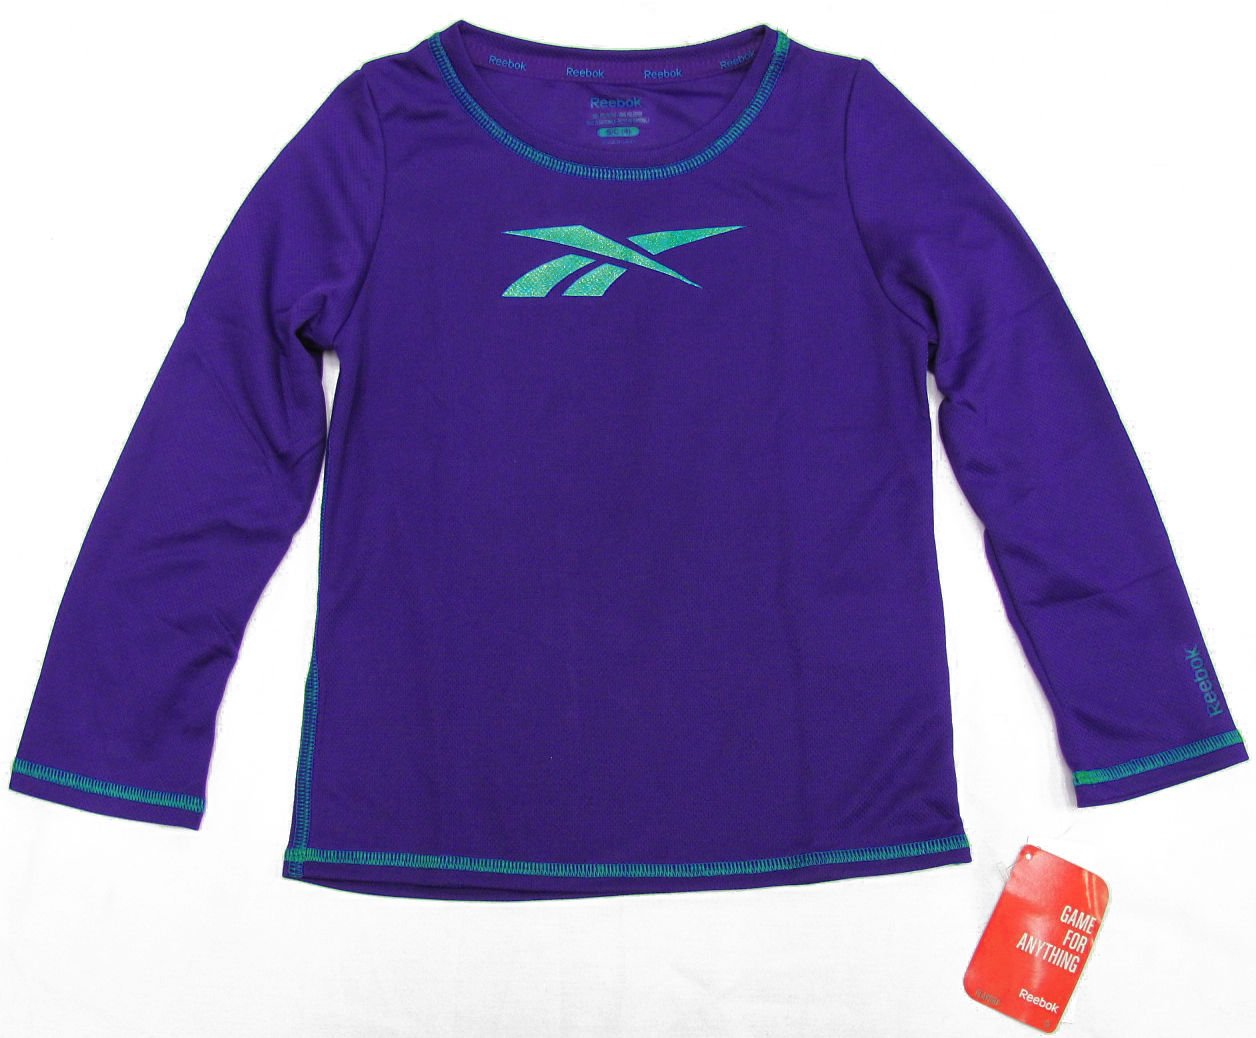 Reebok Girls size 4 Playdry Long Sleeve Purple Shirt with Green Glitter Logo